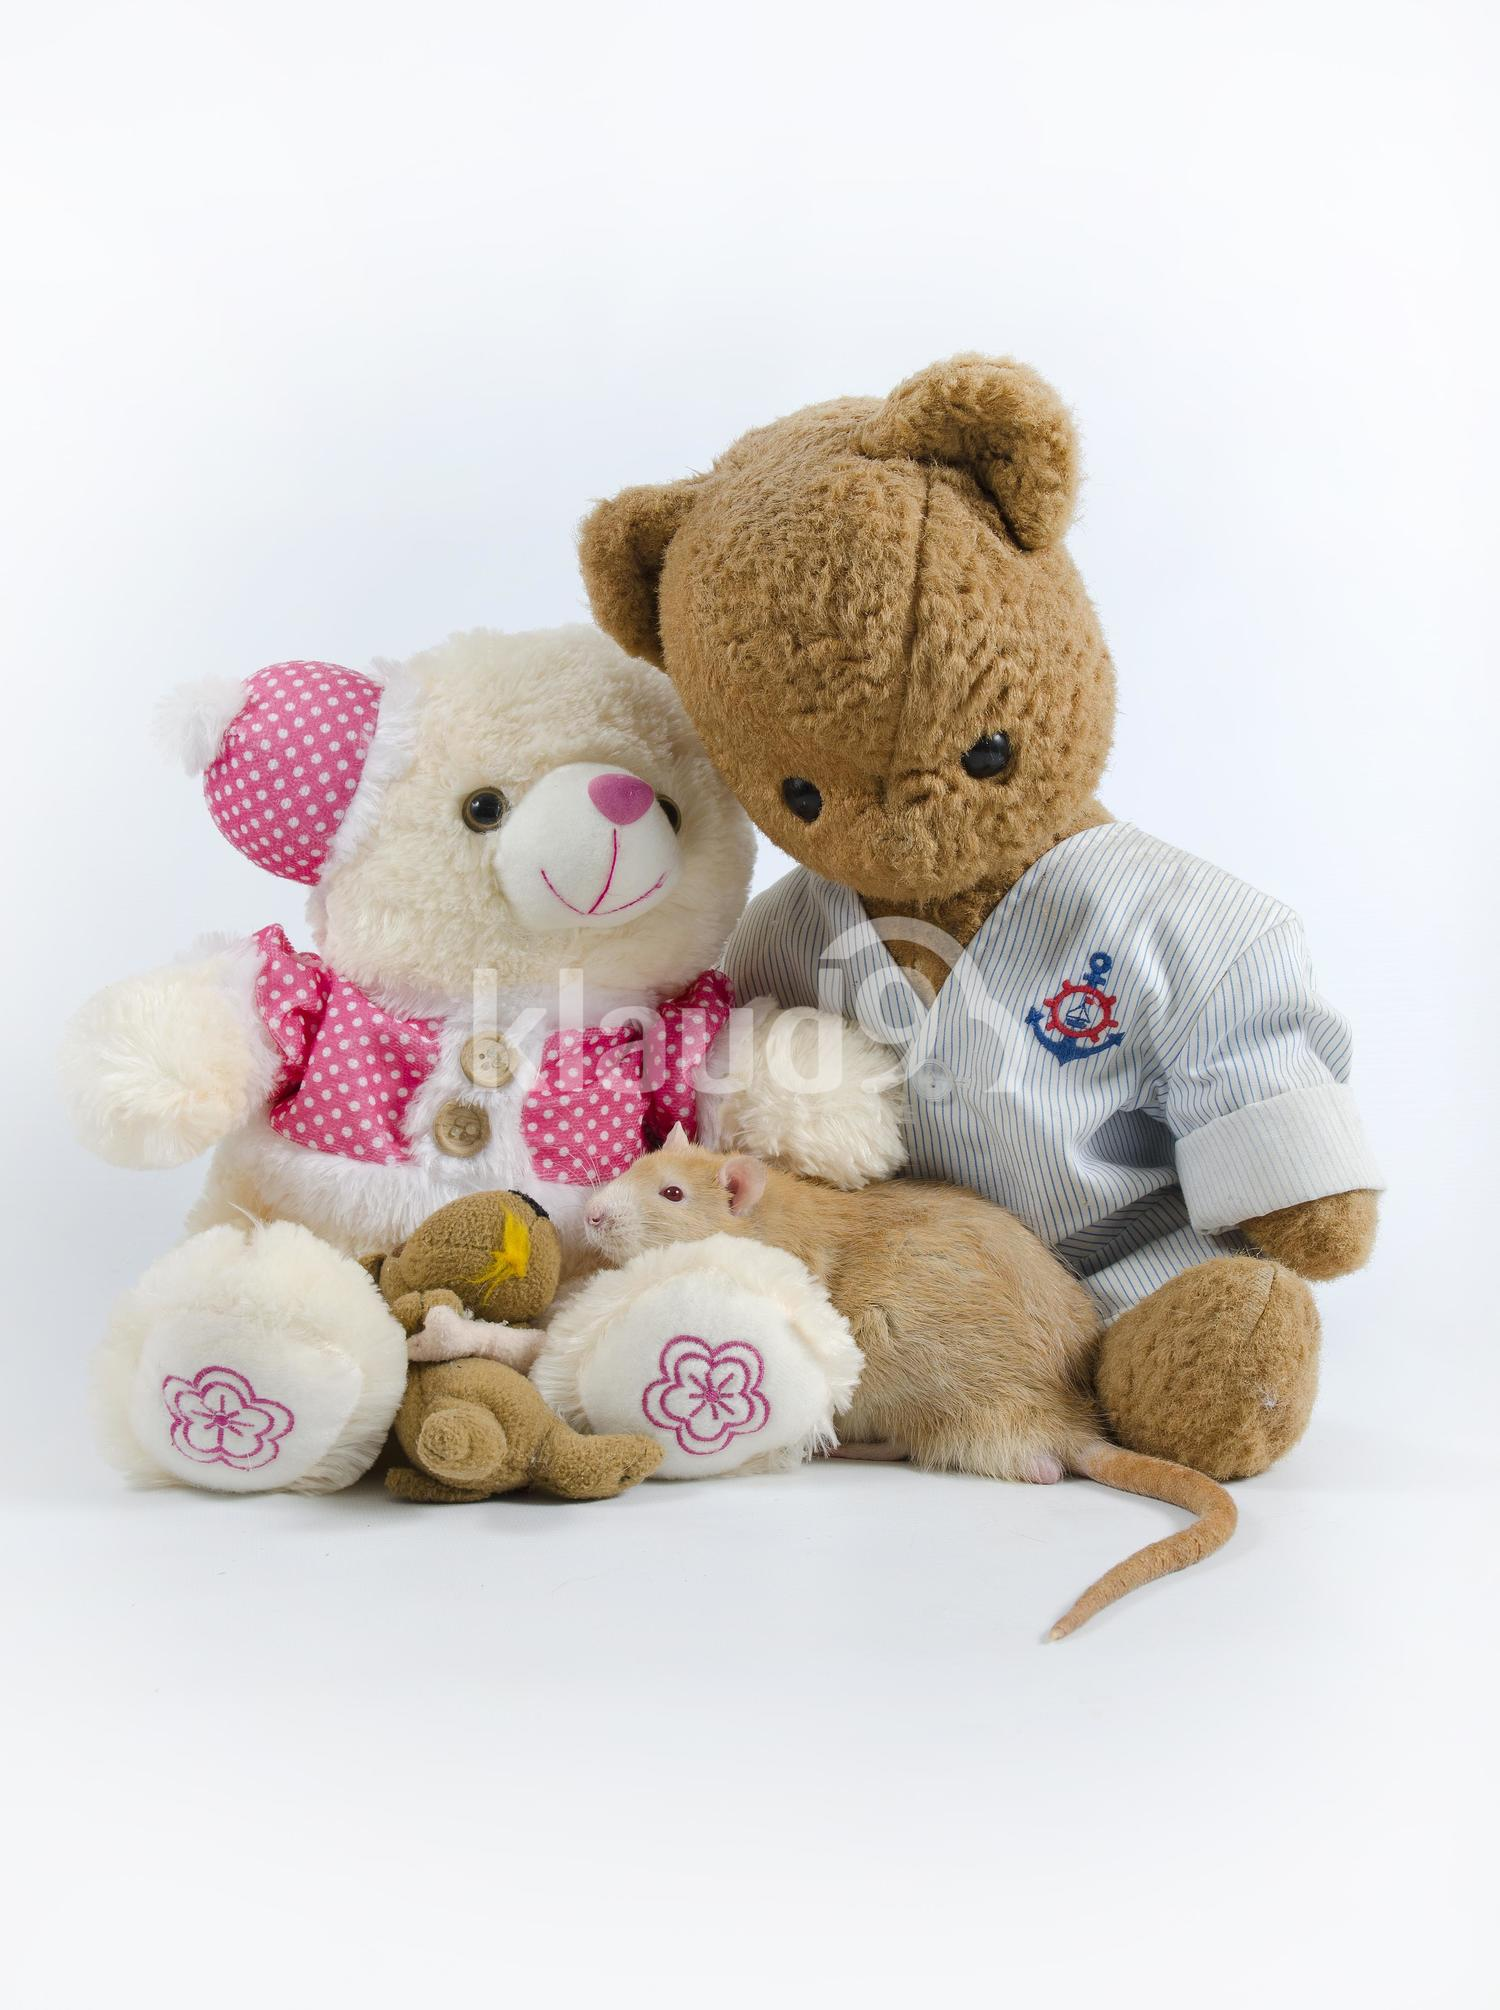 Cute brown mouse with soft toys